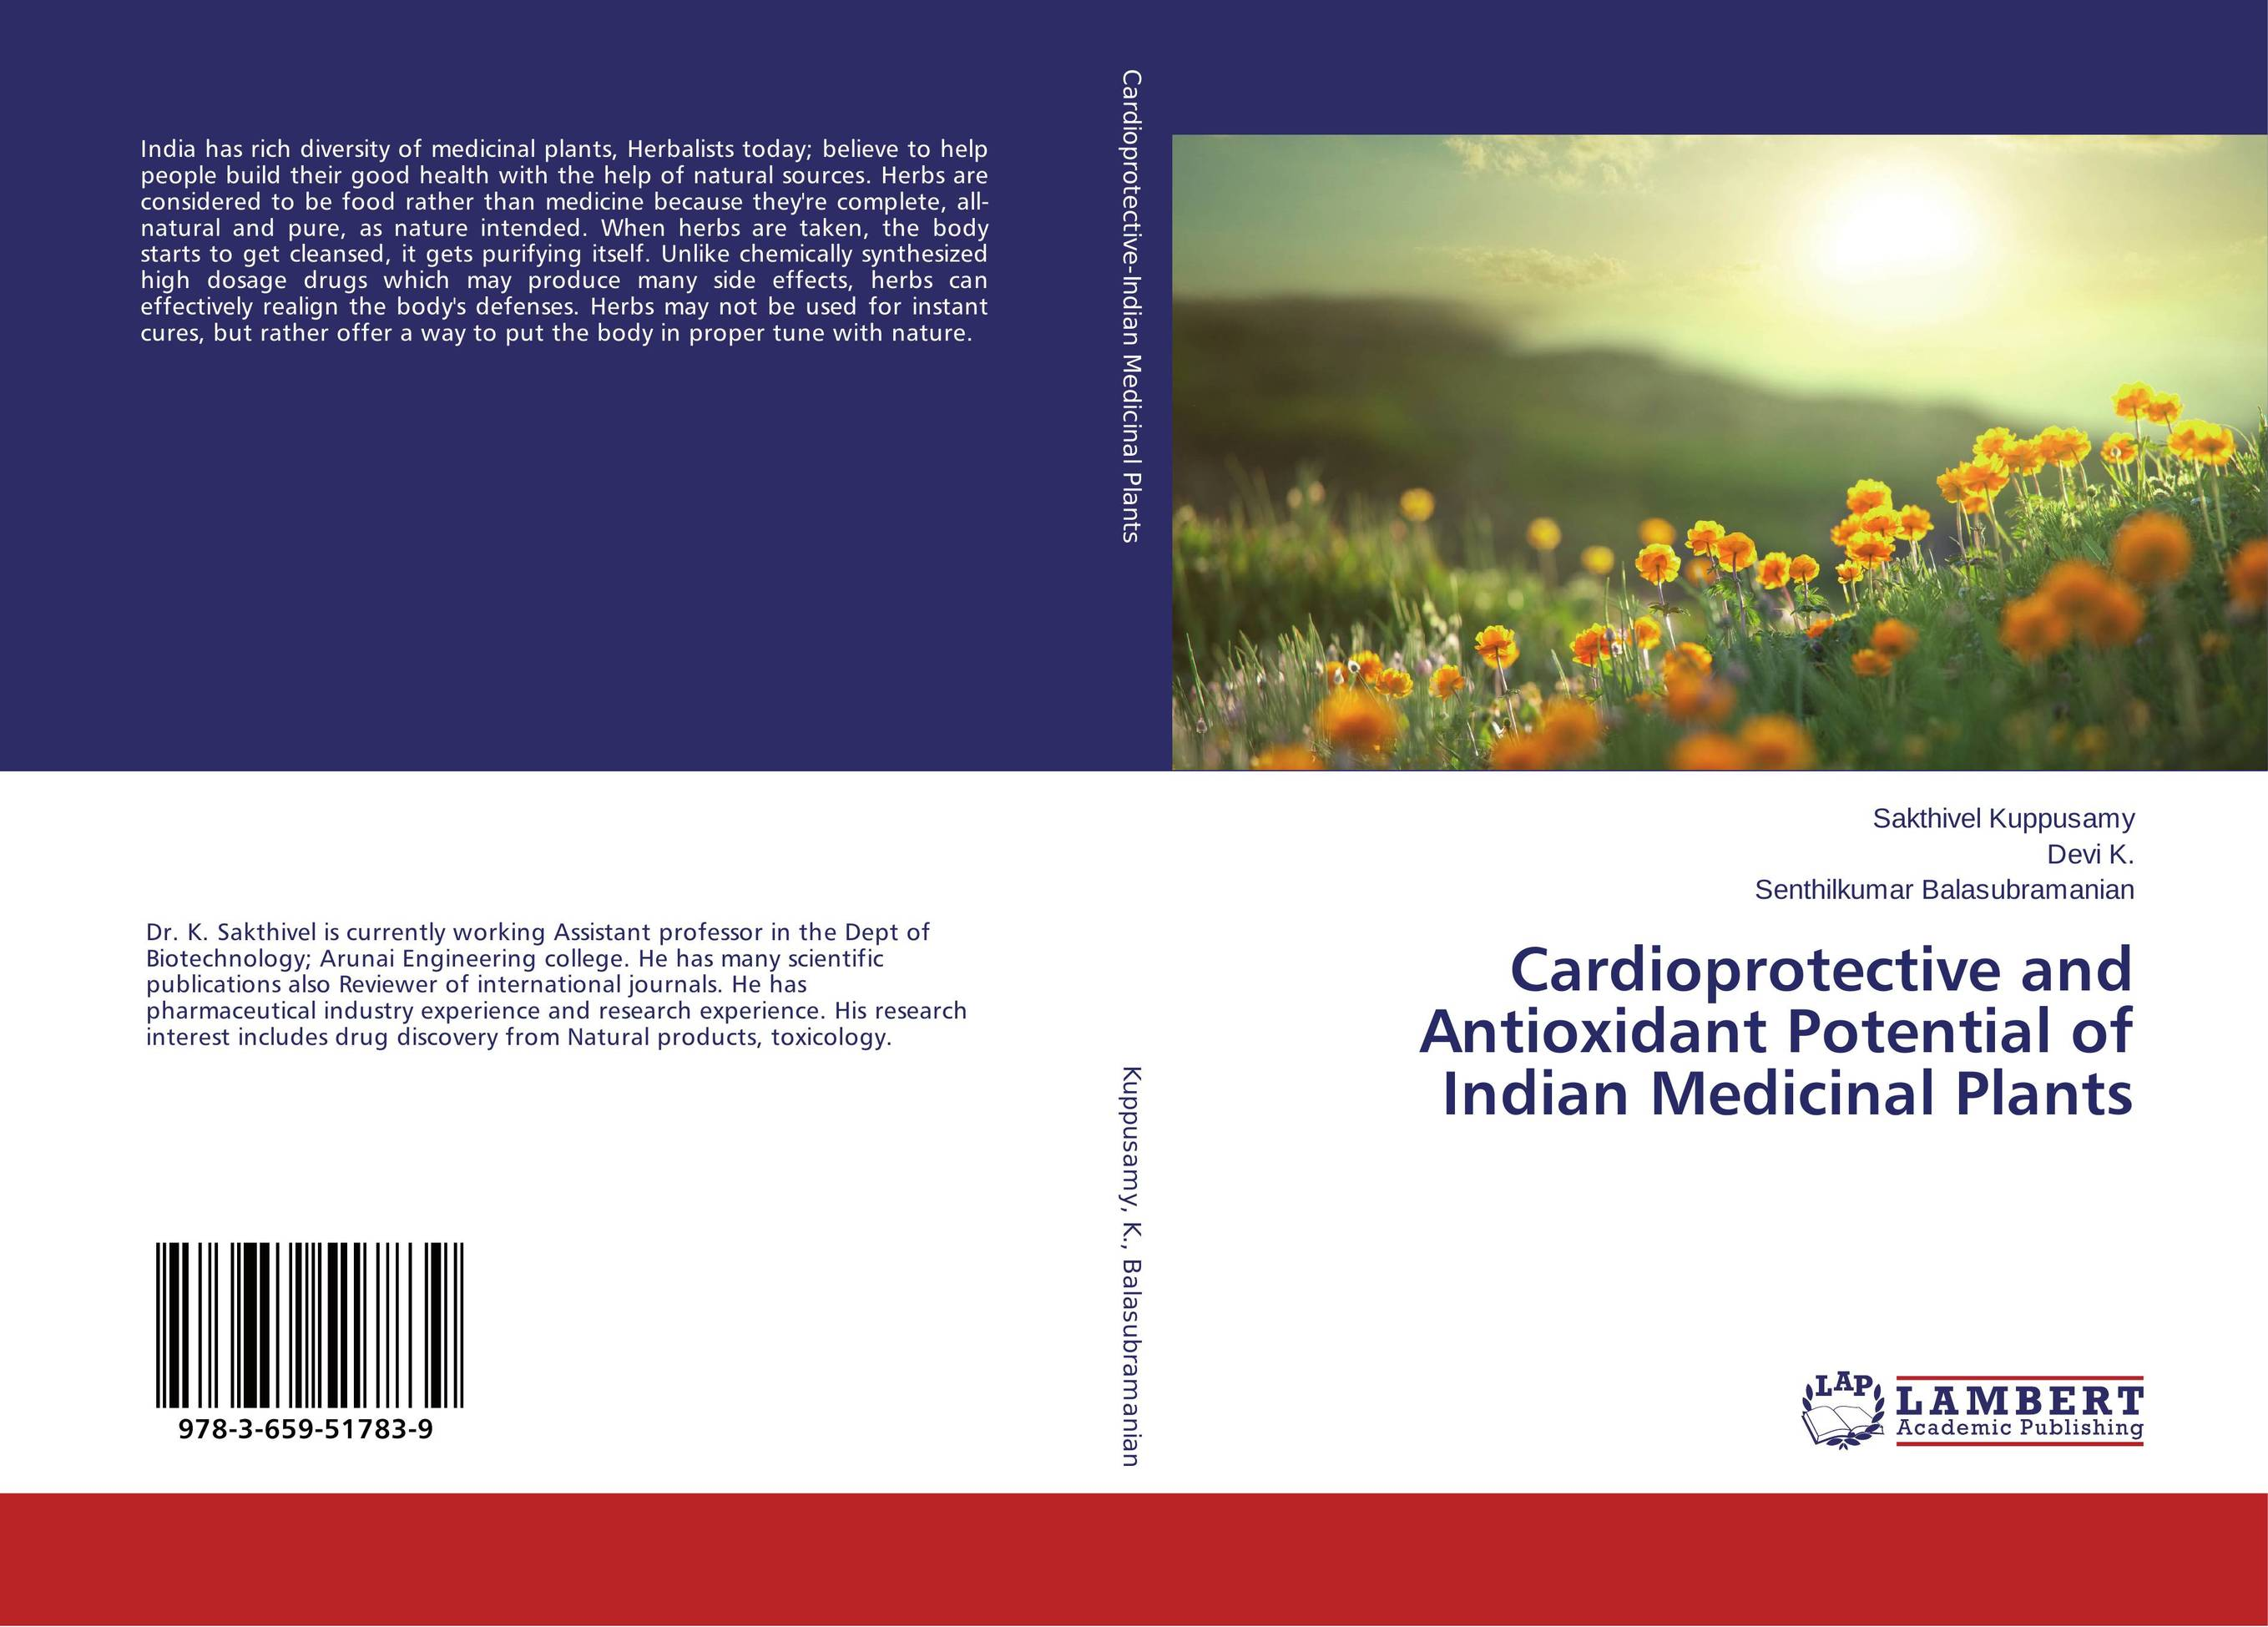 Cardioprotective and Antioxidant Potential of Indian Medicinal Plants antioxidant medicinal property of some indian spices and herb extracts